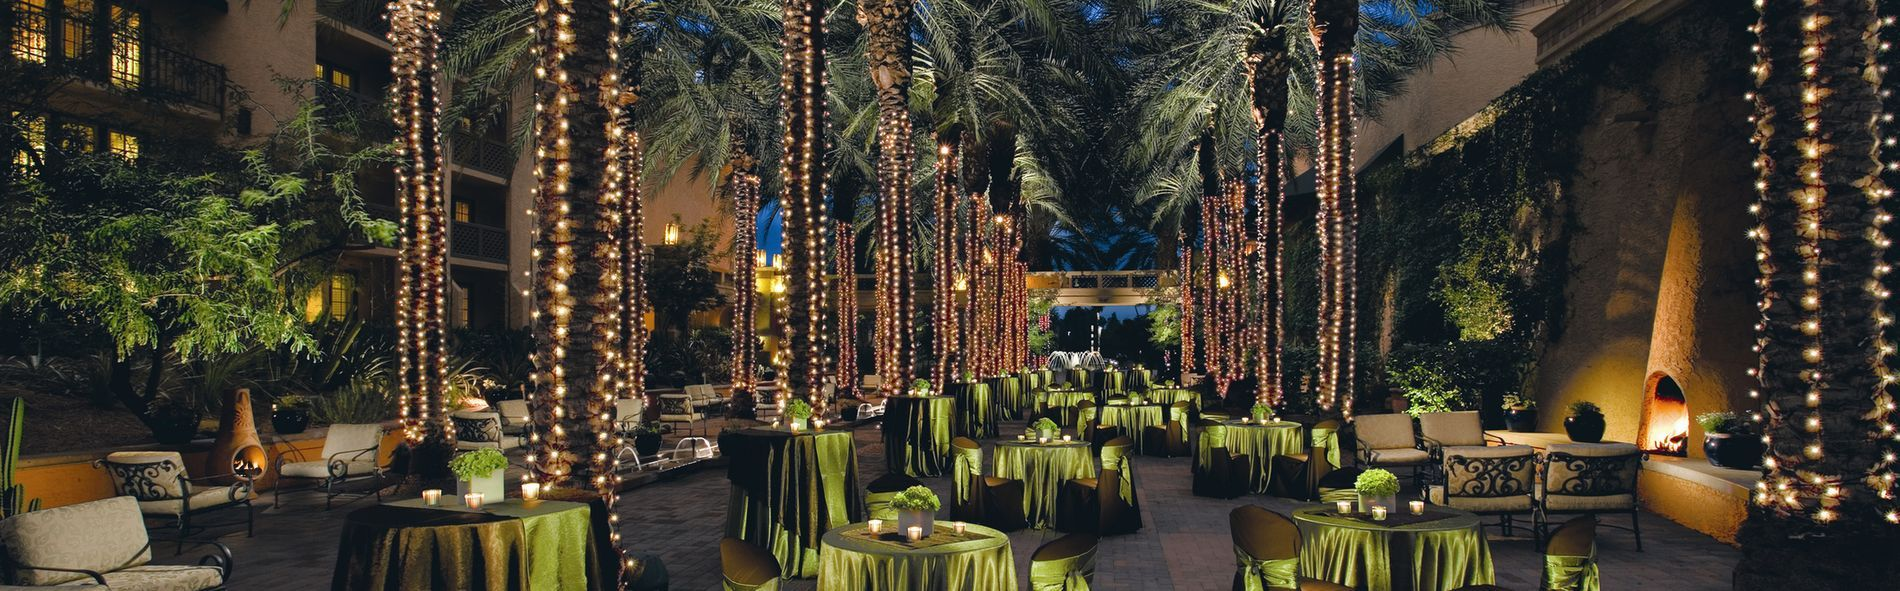 Arizona Grand Resort Amp Spa Premier Outdoor Event Venues In Phoenix